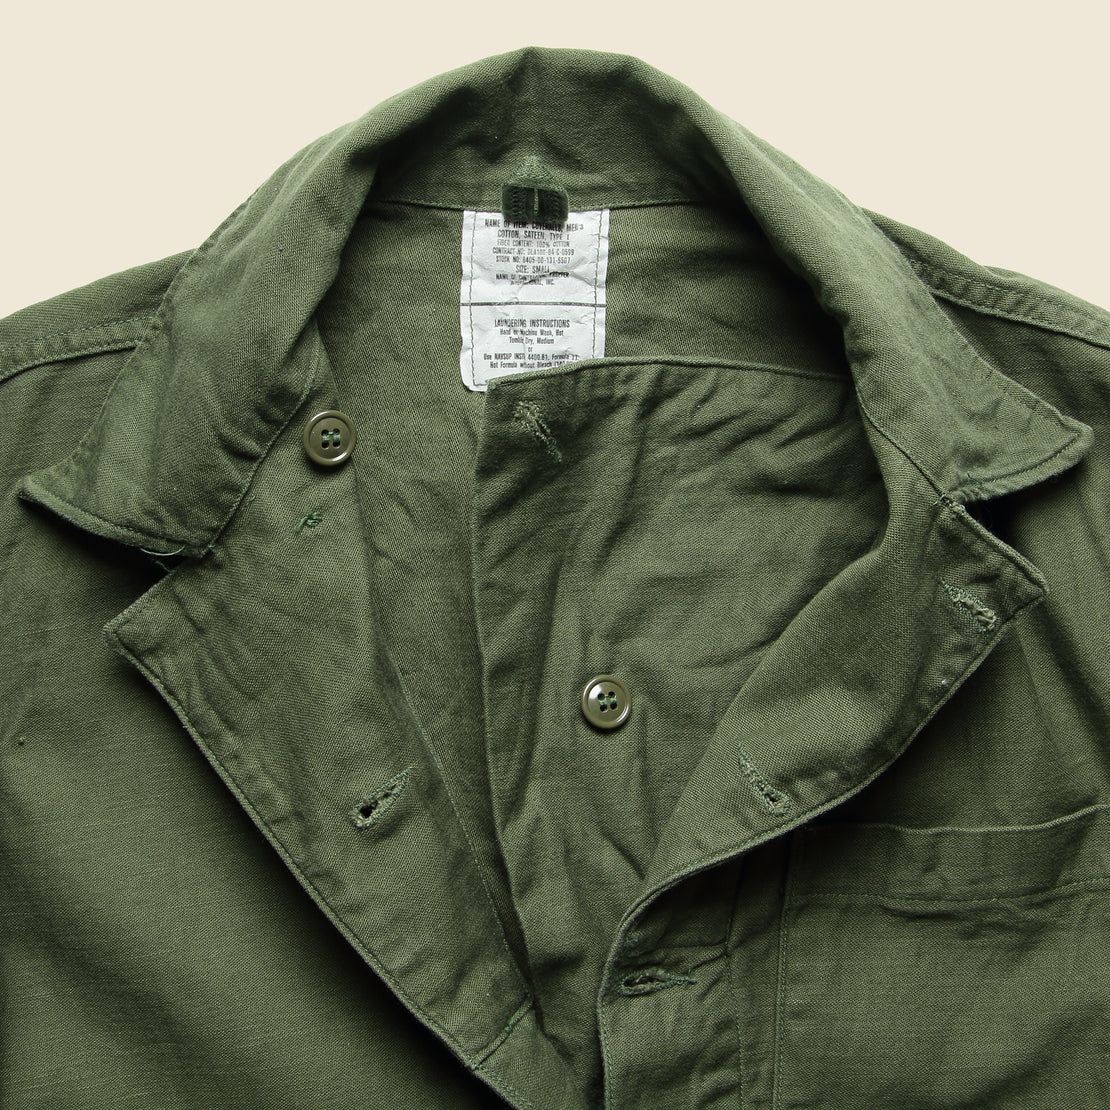 Cotton Sateen Type I Military Coverall - Olive Drab